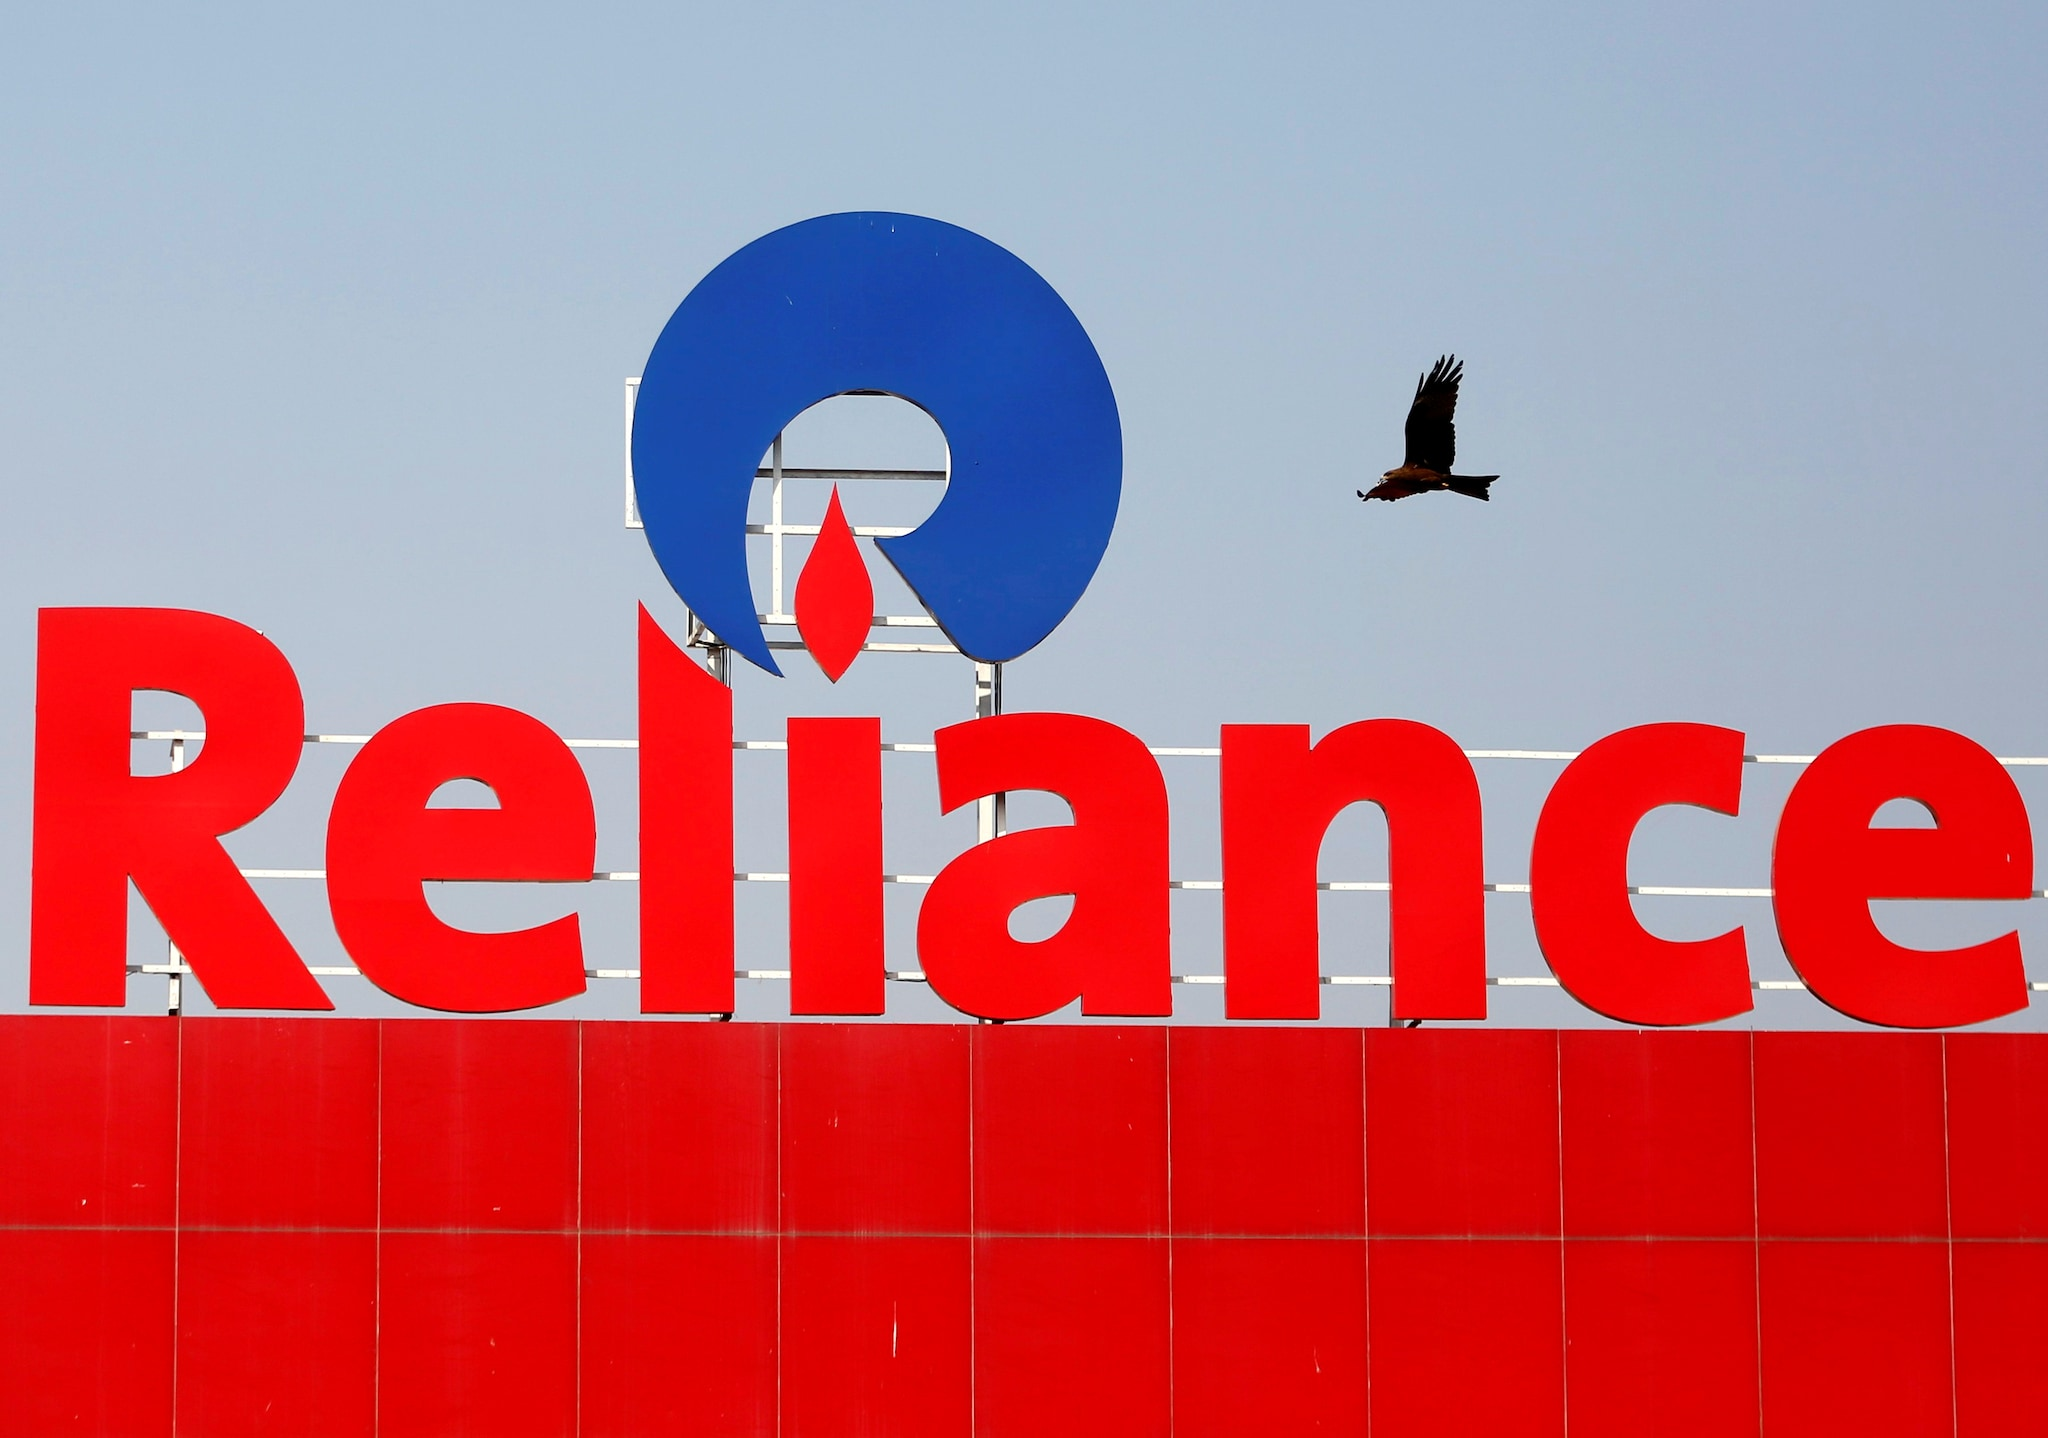 Reliance Industries Ltd: RIL is seeking a minimum price of $5.4 per unit for the natural gas it plans to produce from newer fields in the Bay of Bengal block KG-D6 as it changed parameters to suit government policies. (Photo: REUTERS)